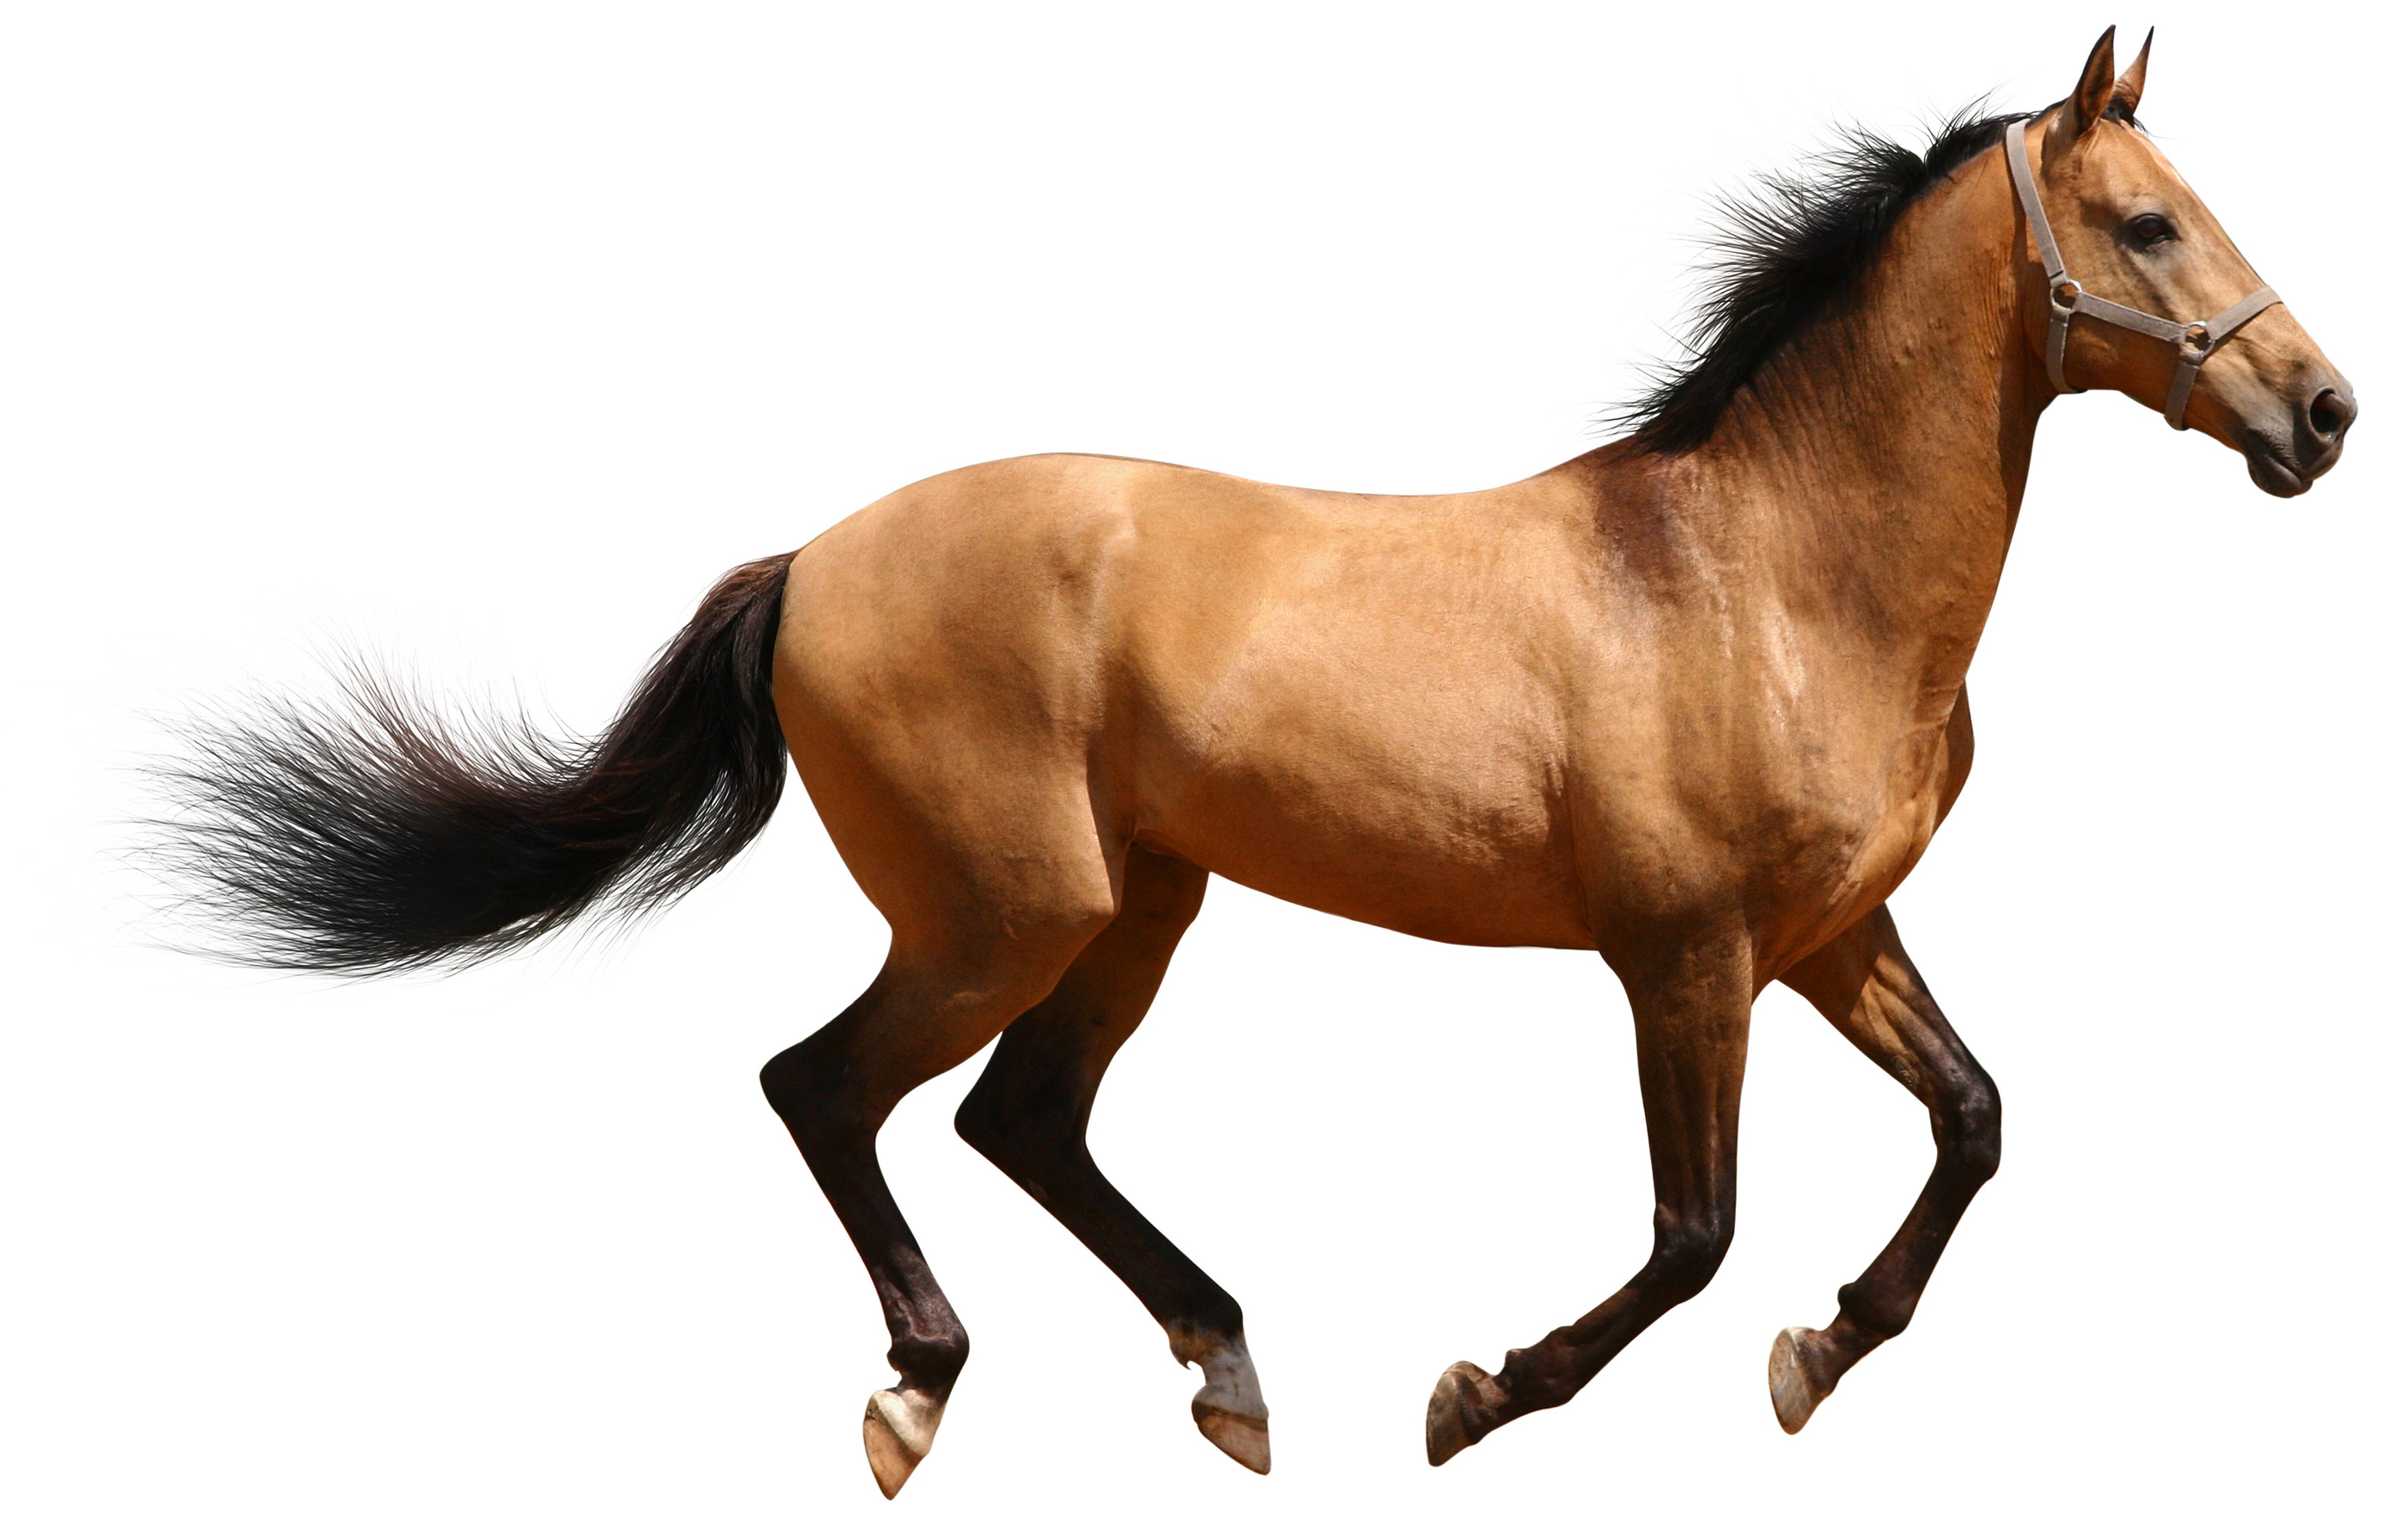 Horse Png image #22544 - Horse PNG